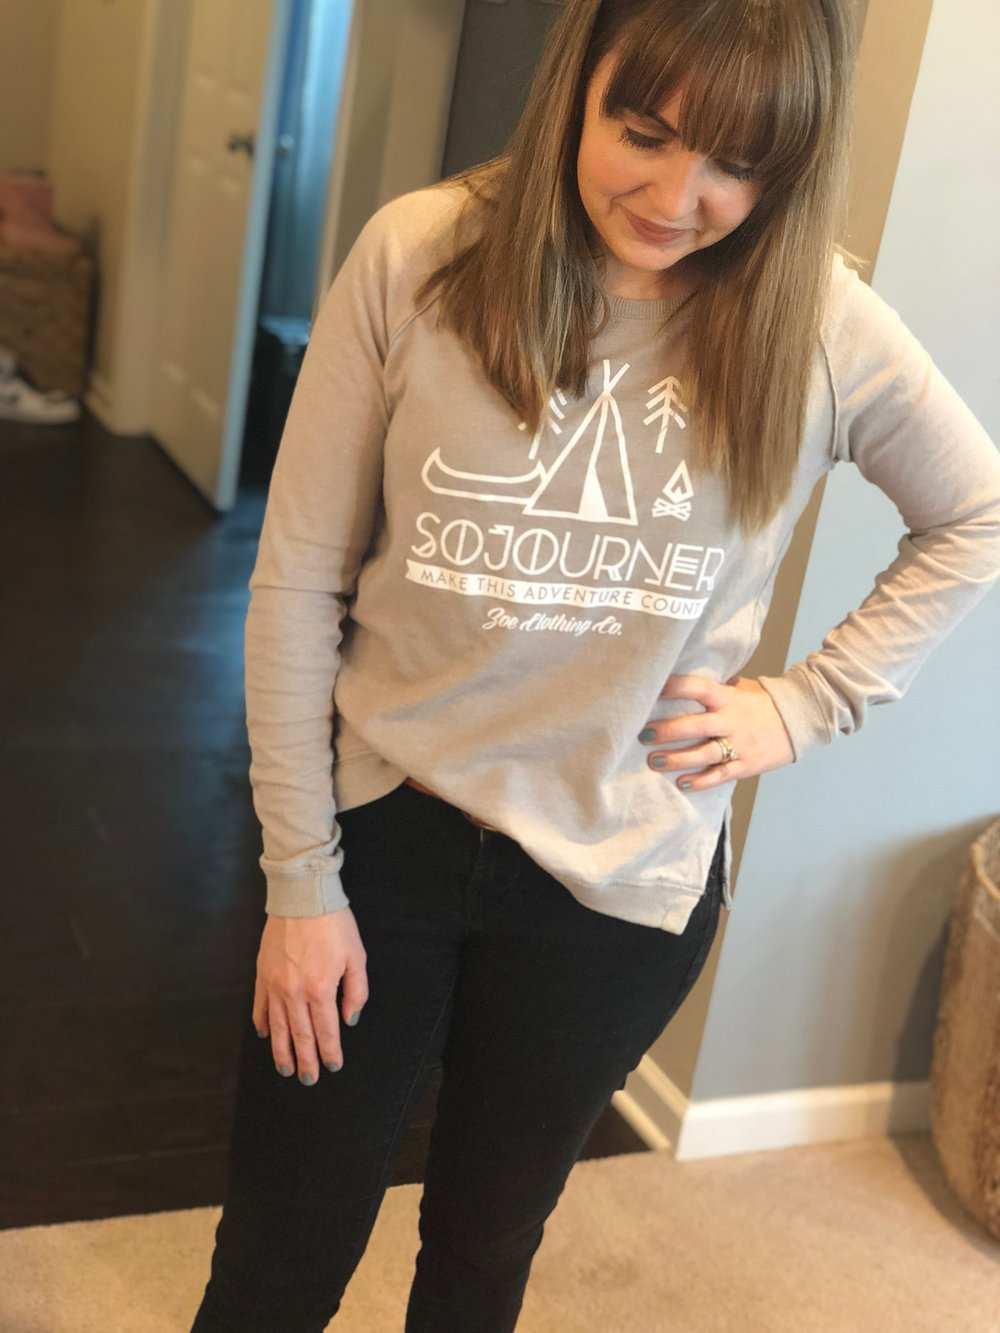 Comfortable clothing that looks great and encourages our faith? Yes please! We are partnering today with a brand we know you will love and can't wait to share with you!